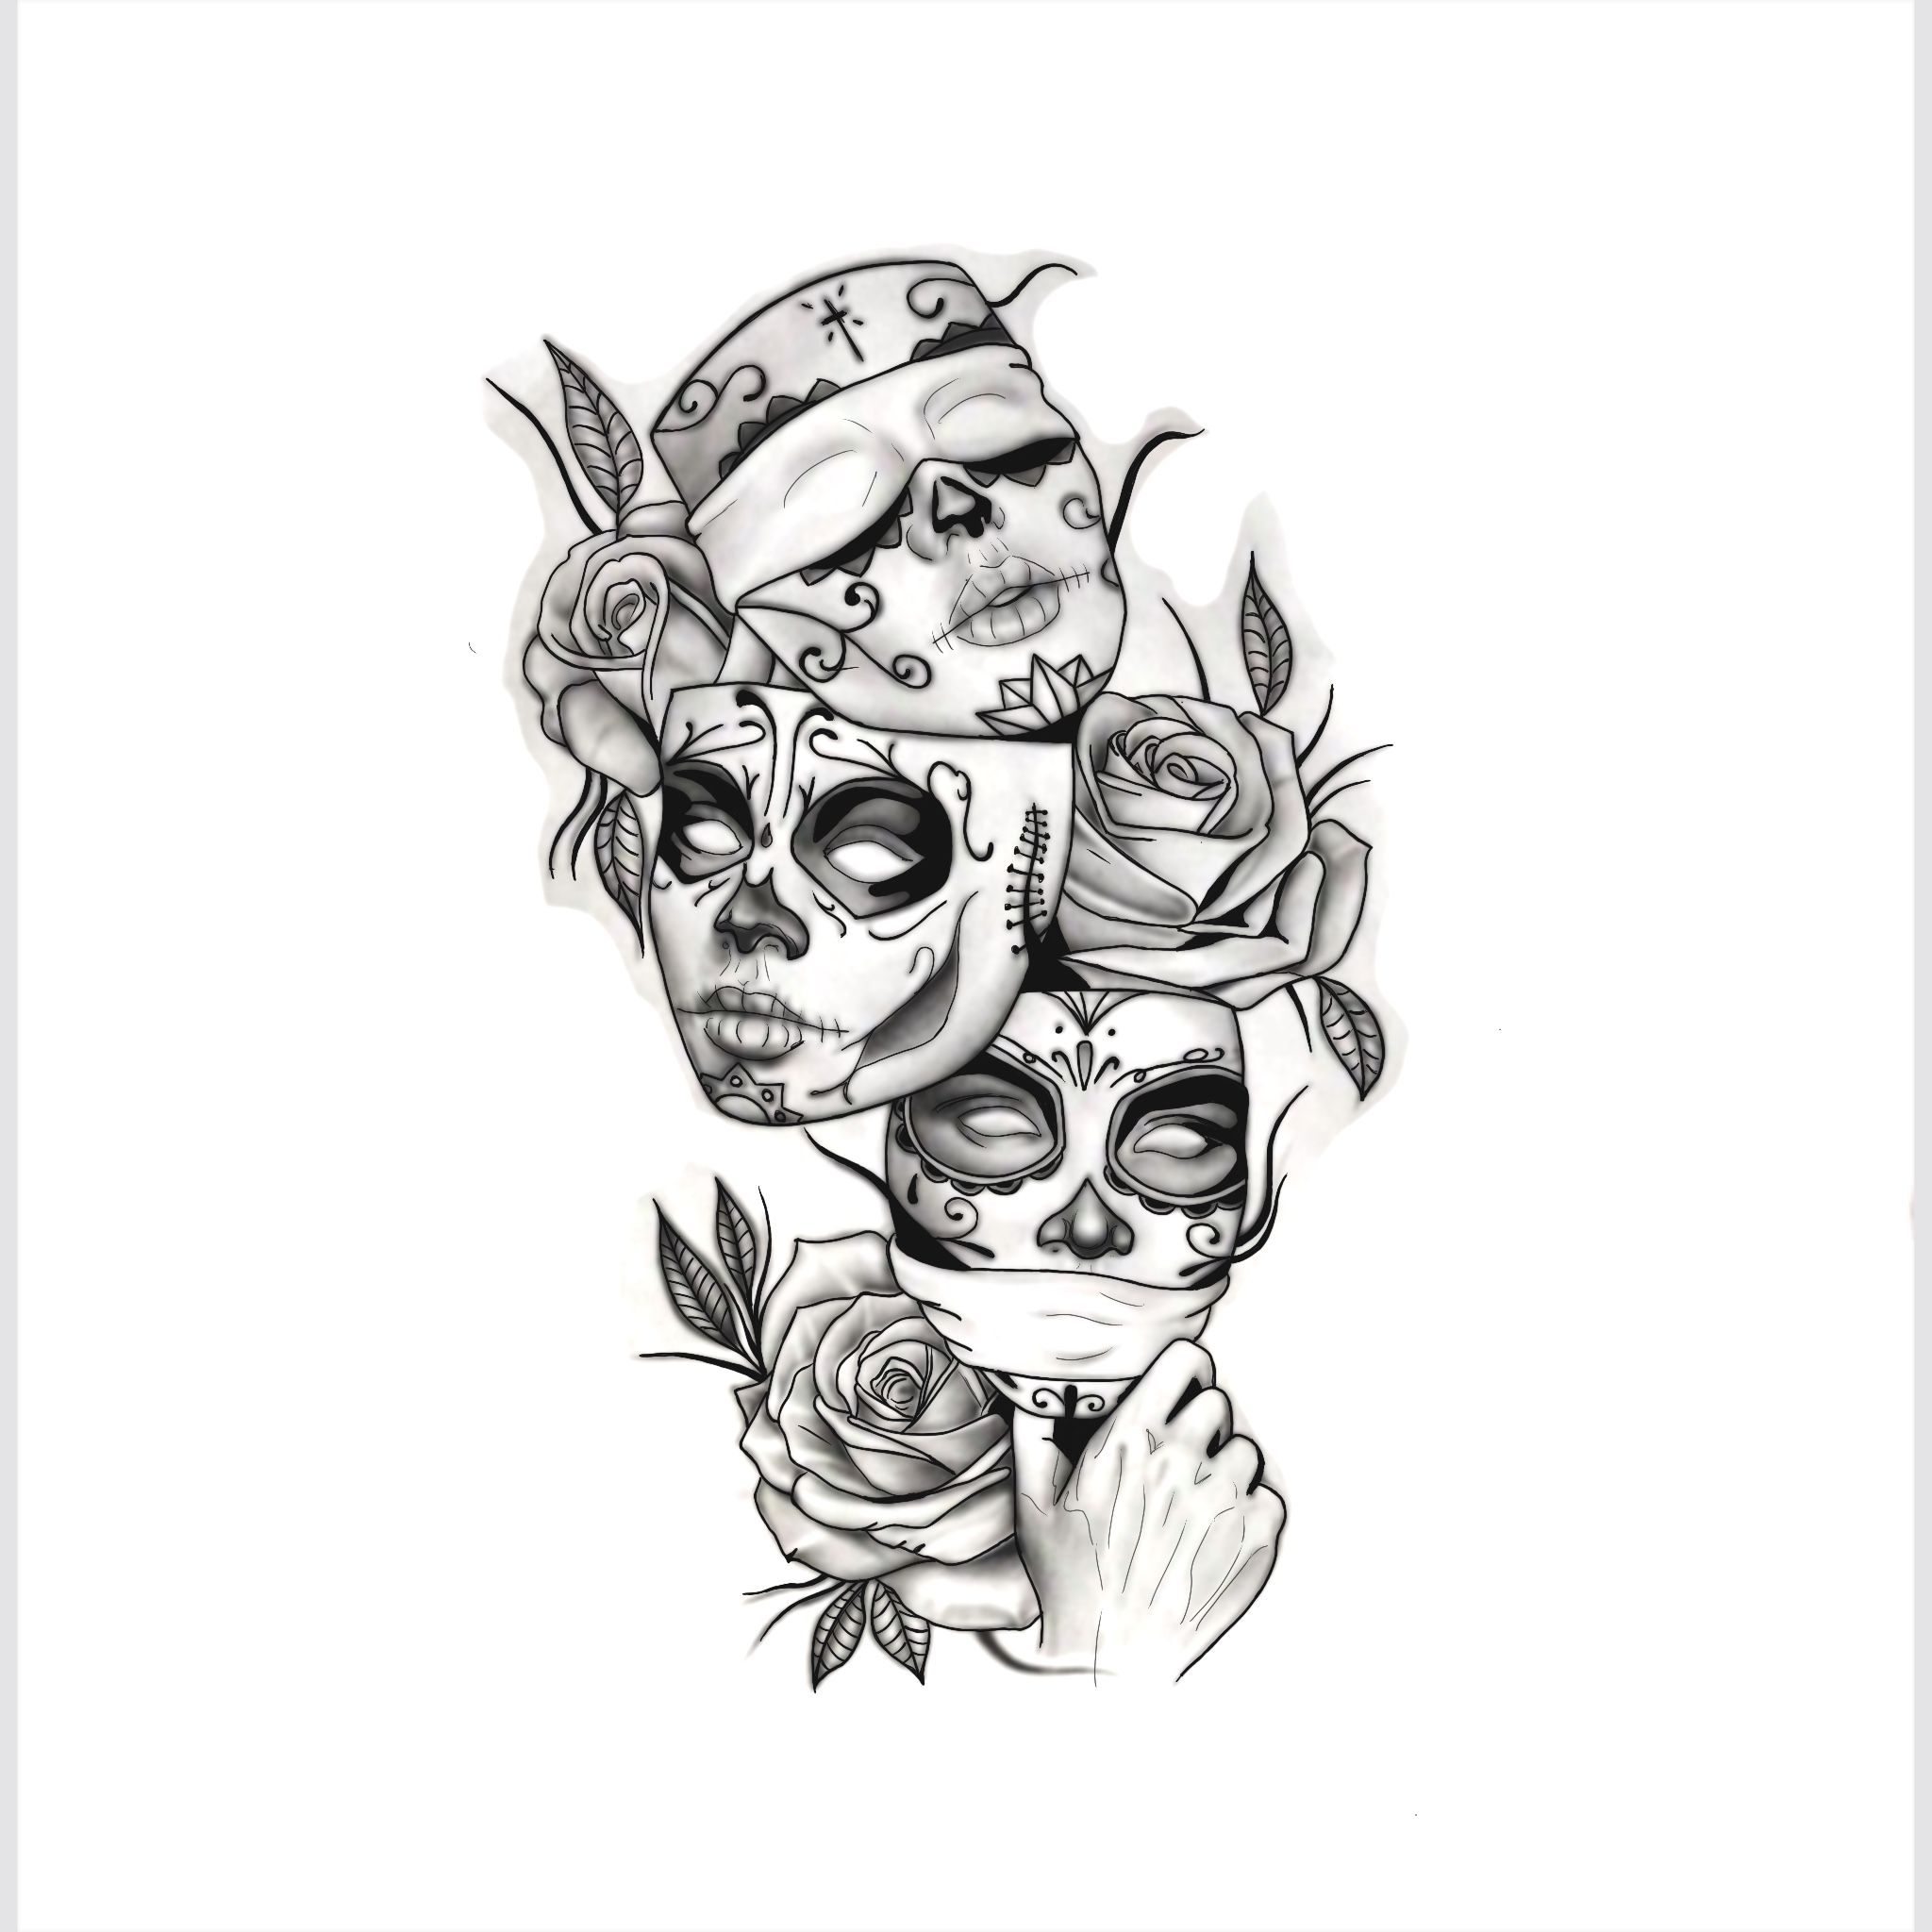 Tattoo Art Art Tattoo Sleeve Tattoos Tattoos